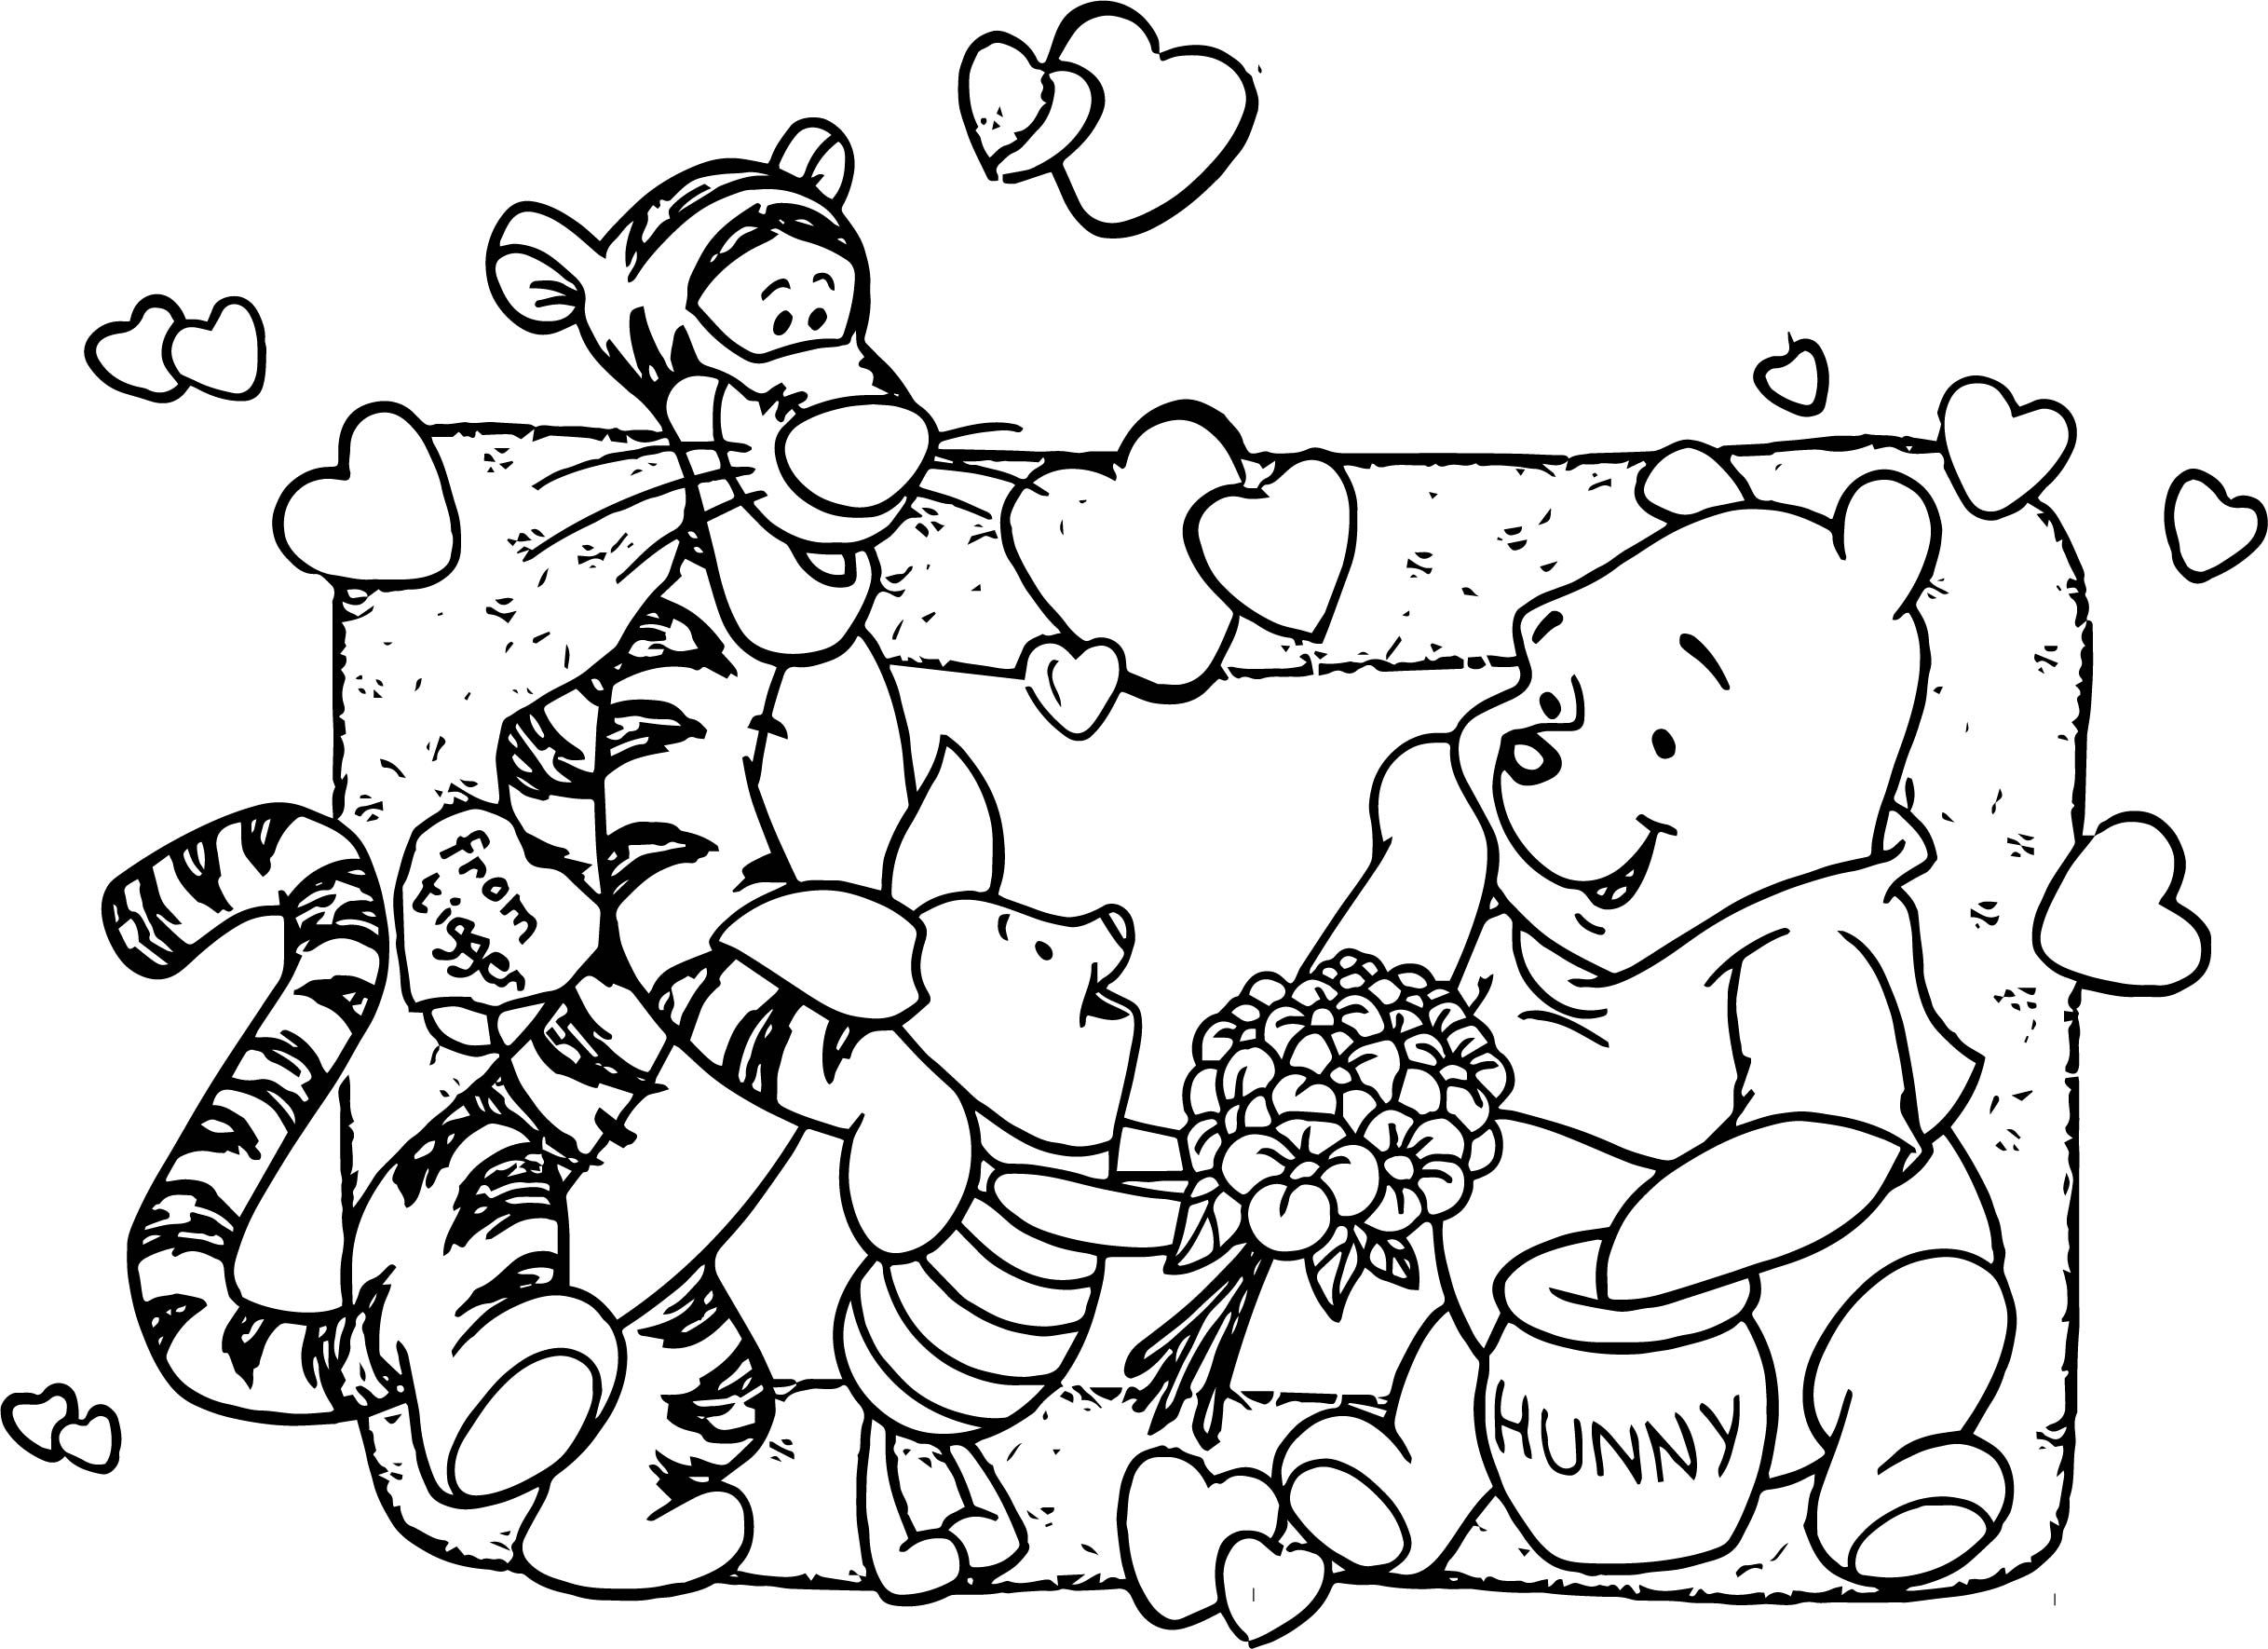 Baby Piglet Winnie The Pooh From Tigger Hunny Coloring Page ...